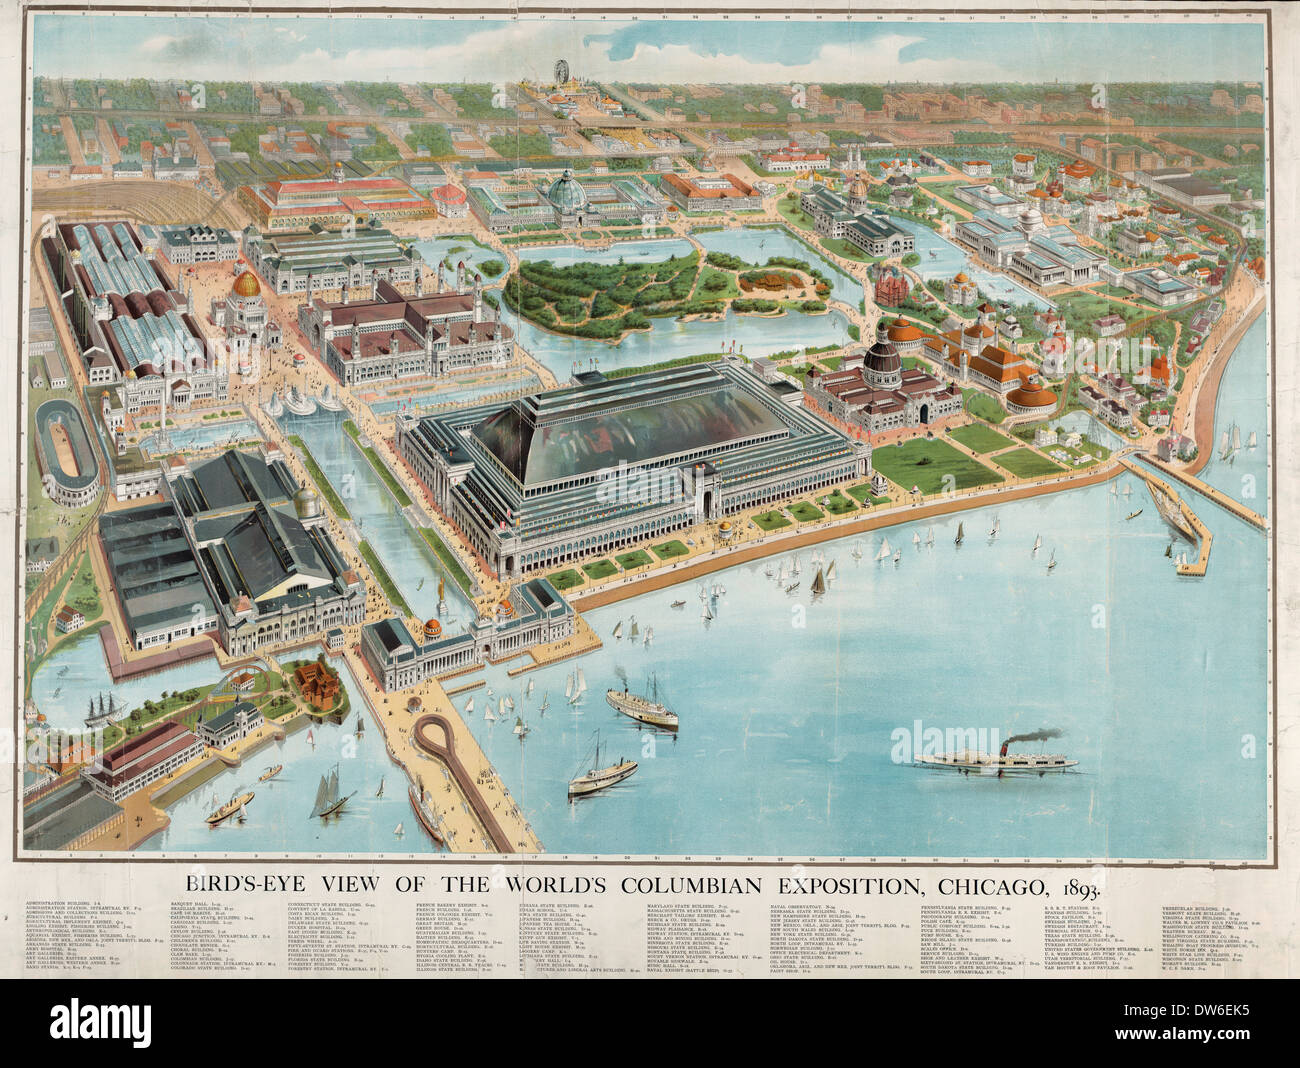 Bird's-eye view of the World's Columbian Exposition, Chicago, 1893 - Stock Image